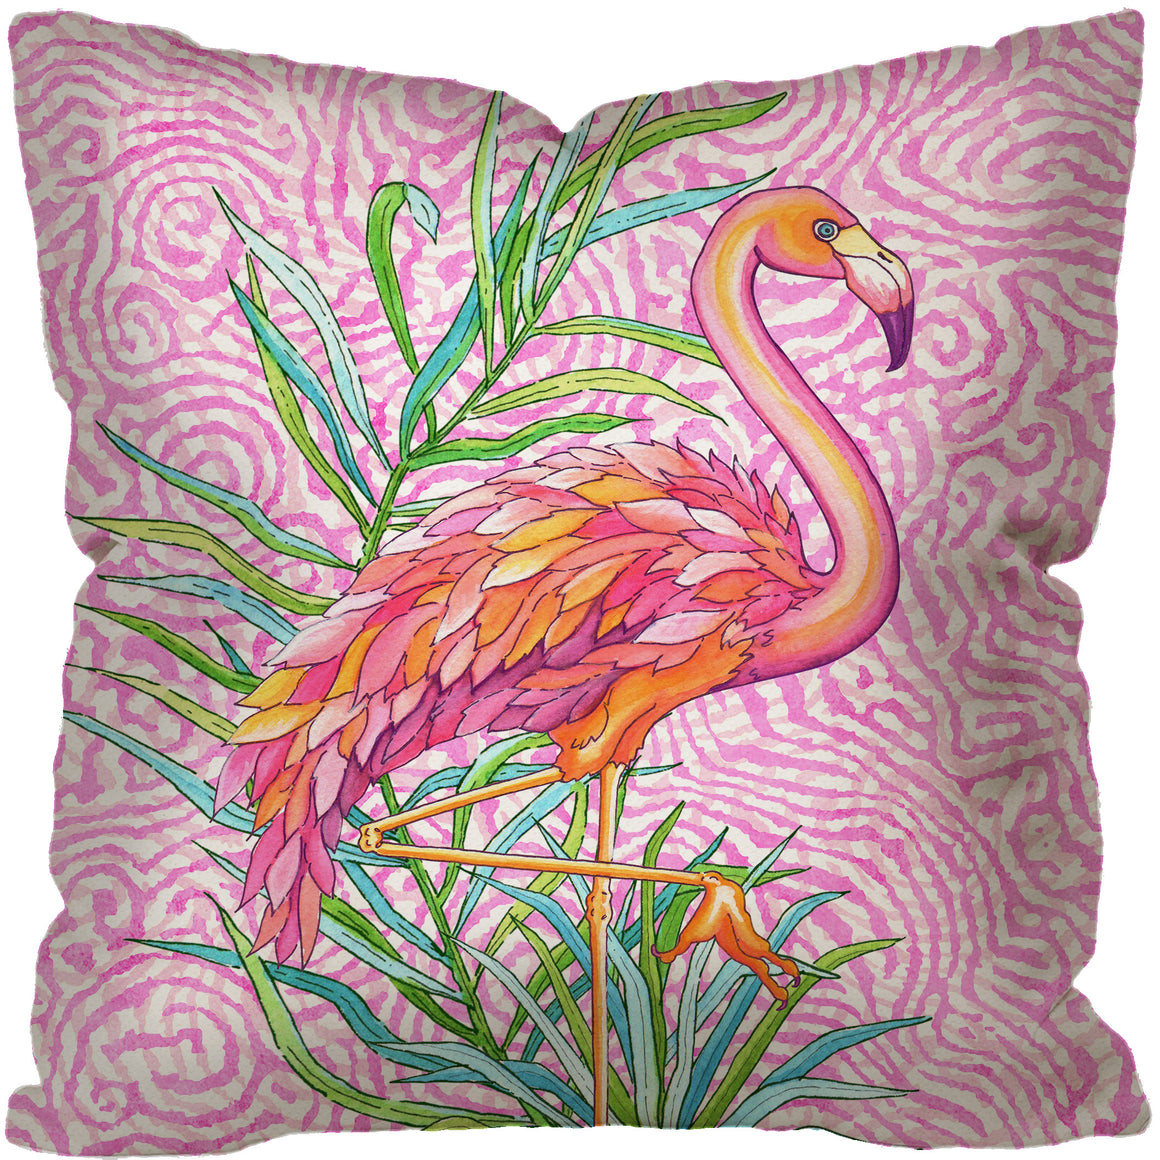 FLAMINGO OUTDOOR ~ I